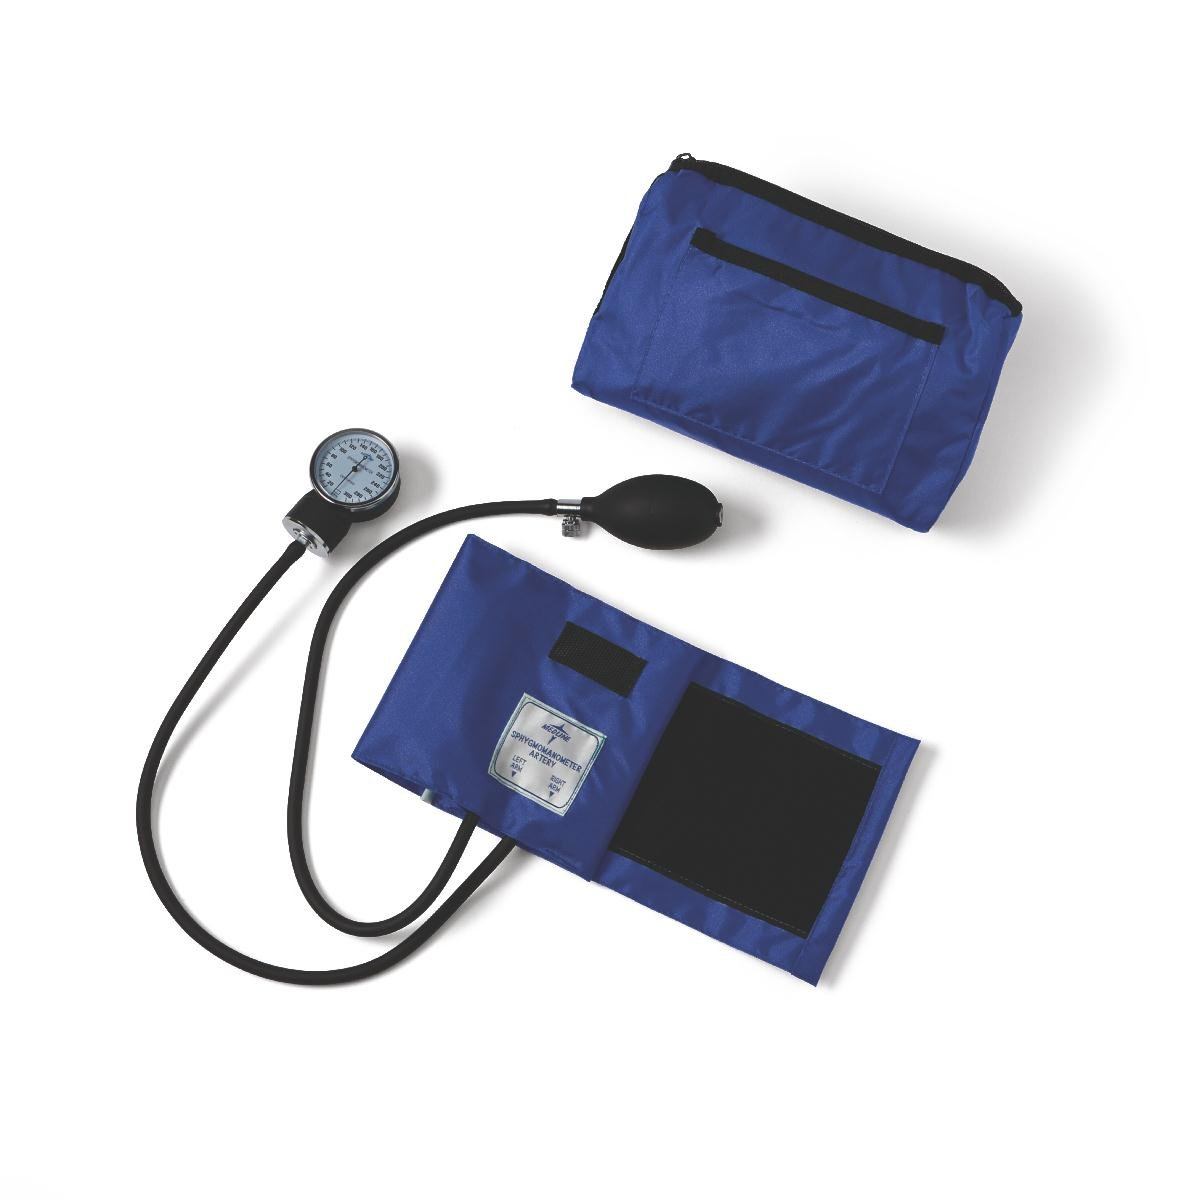 Medline Compli-Mates Aneroid Sphygmomanometer Kit with Carrying Case, Adult Blood Pressure Cuff, Manual, Professional, Royal Blue